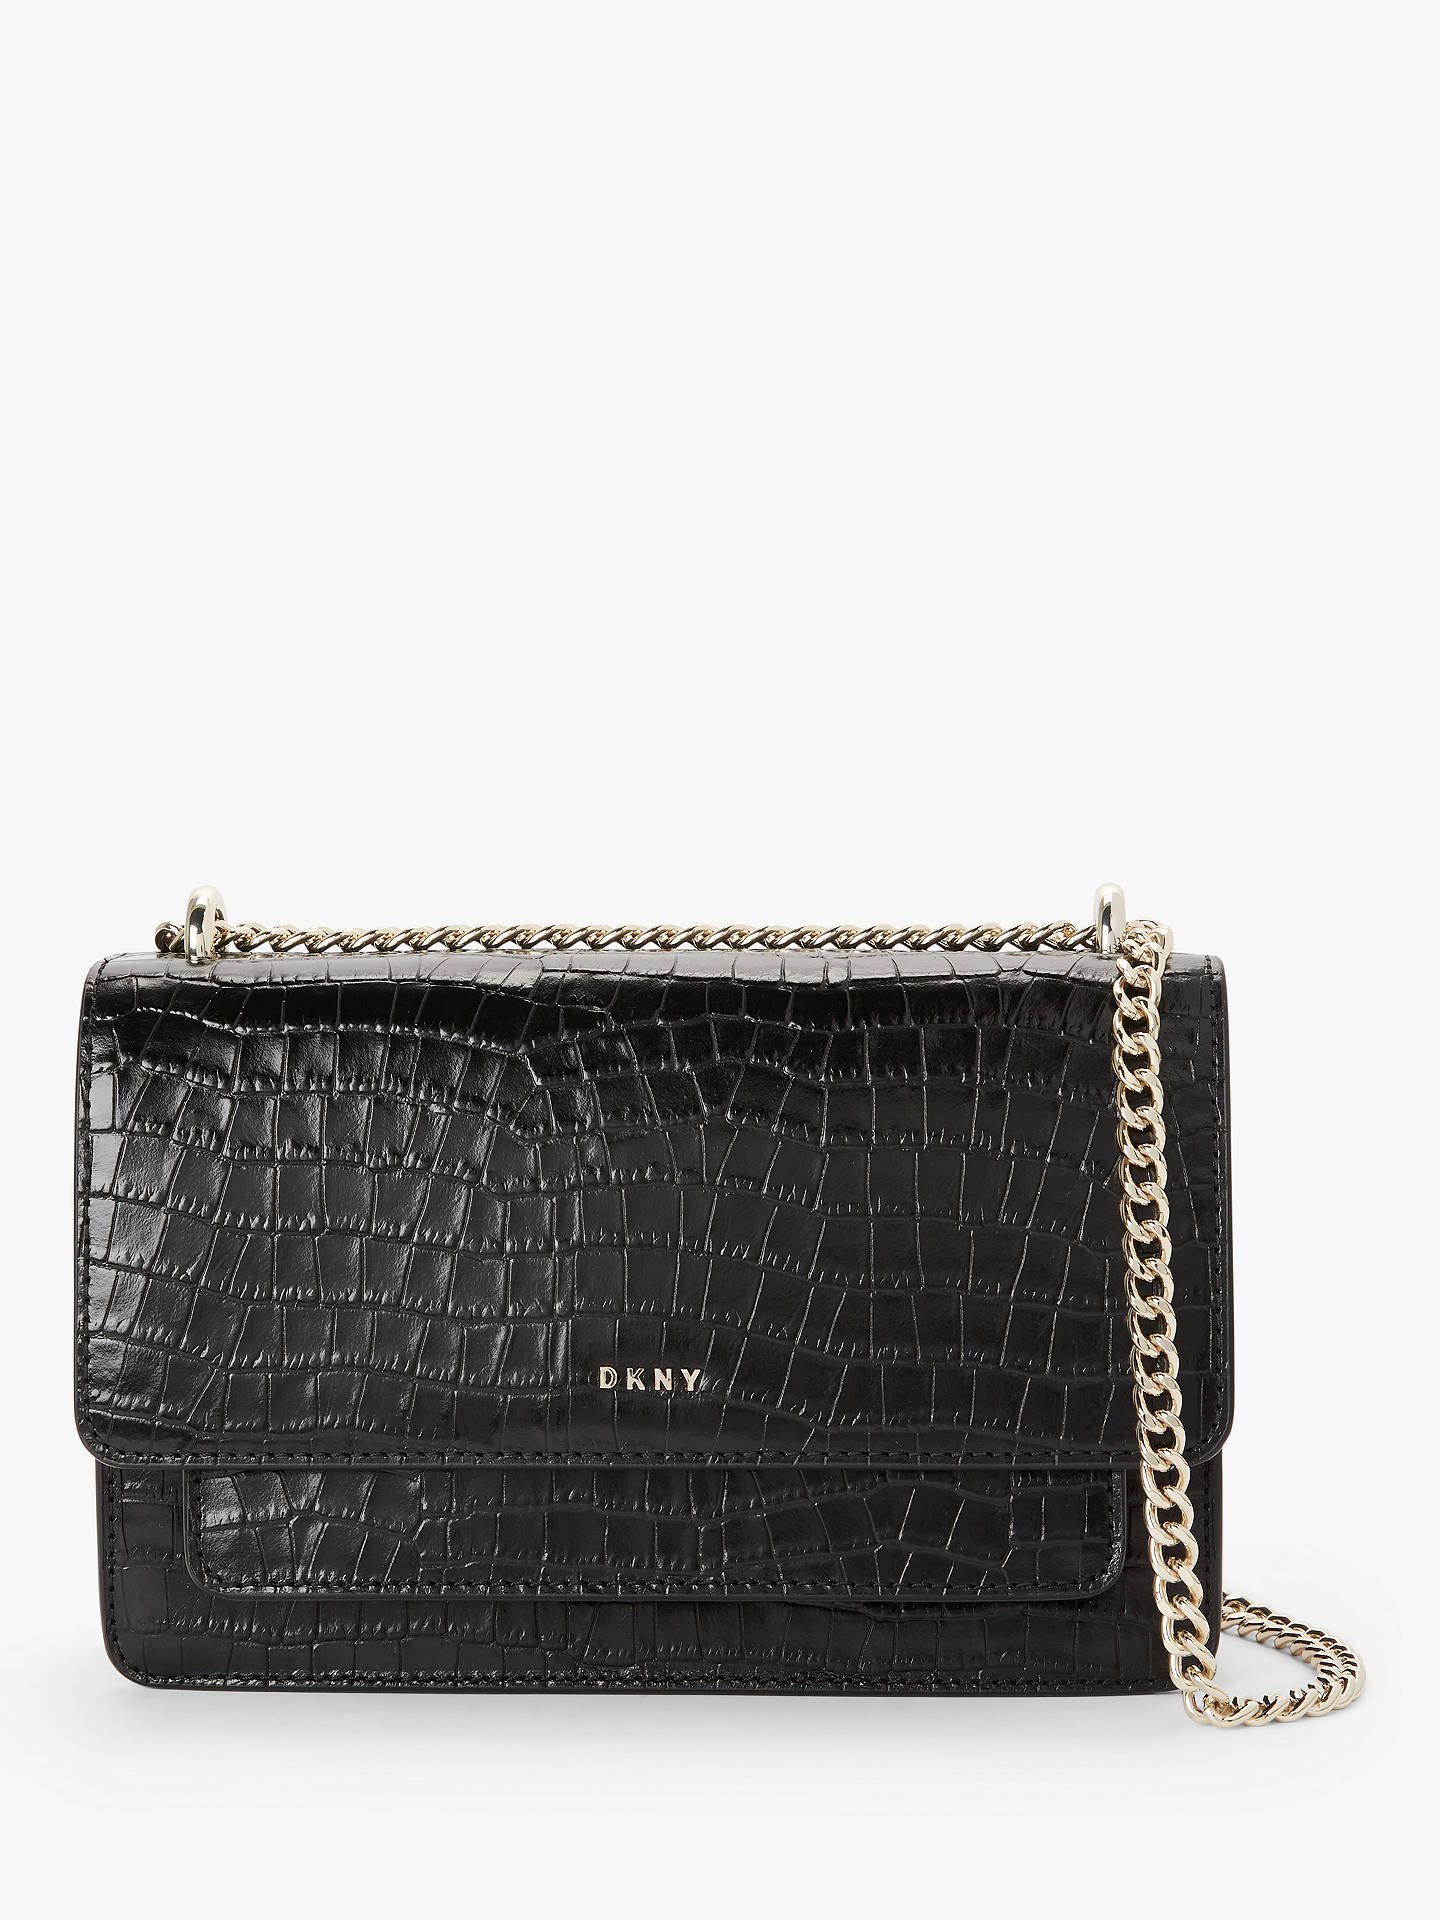 Dkny Bryant Croc Embossed Leather Small Chain Shoulder Bag, Black/Gold by Dkny